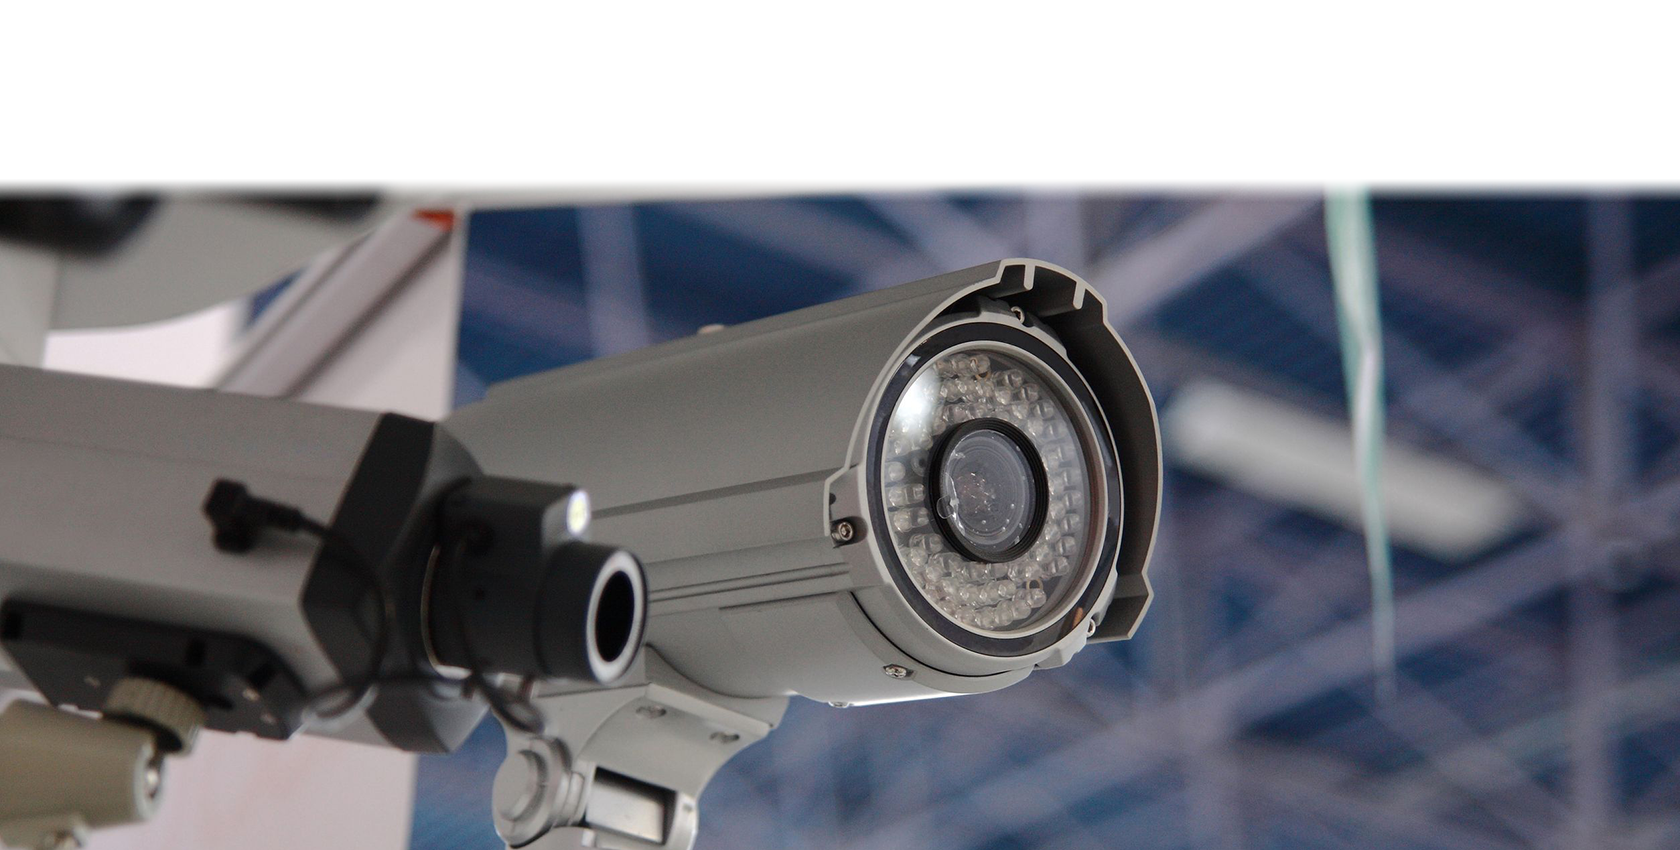 Security Systems Amp Cctv The Redsquare Group